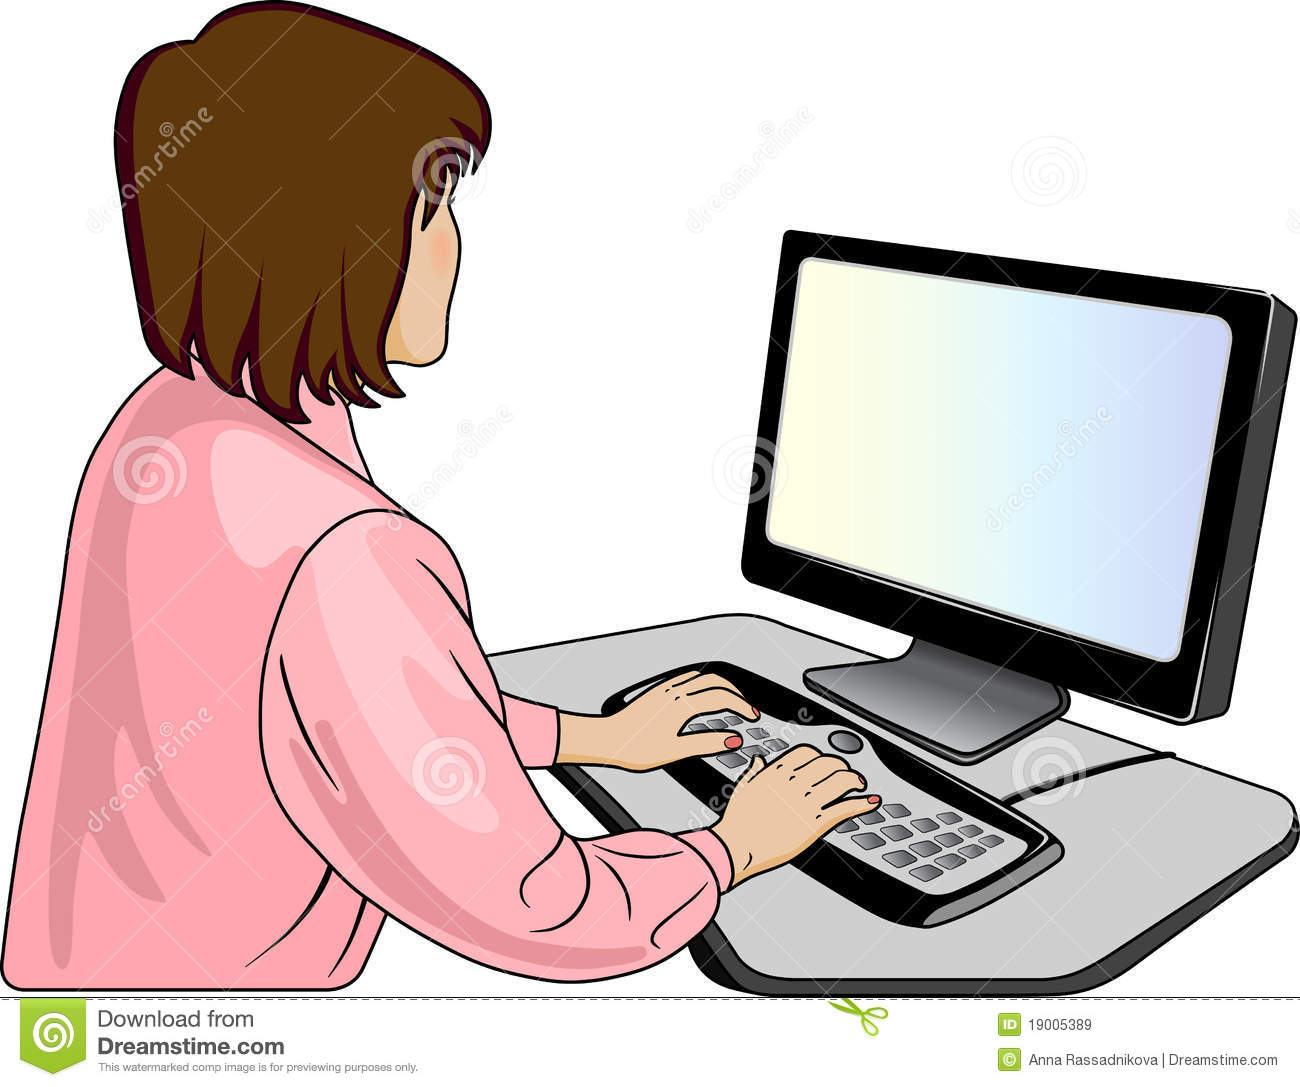 image envision clipart sky blue guy characters work at computers #13